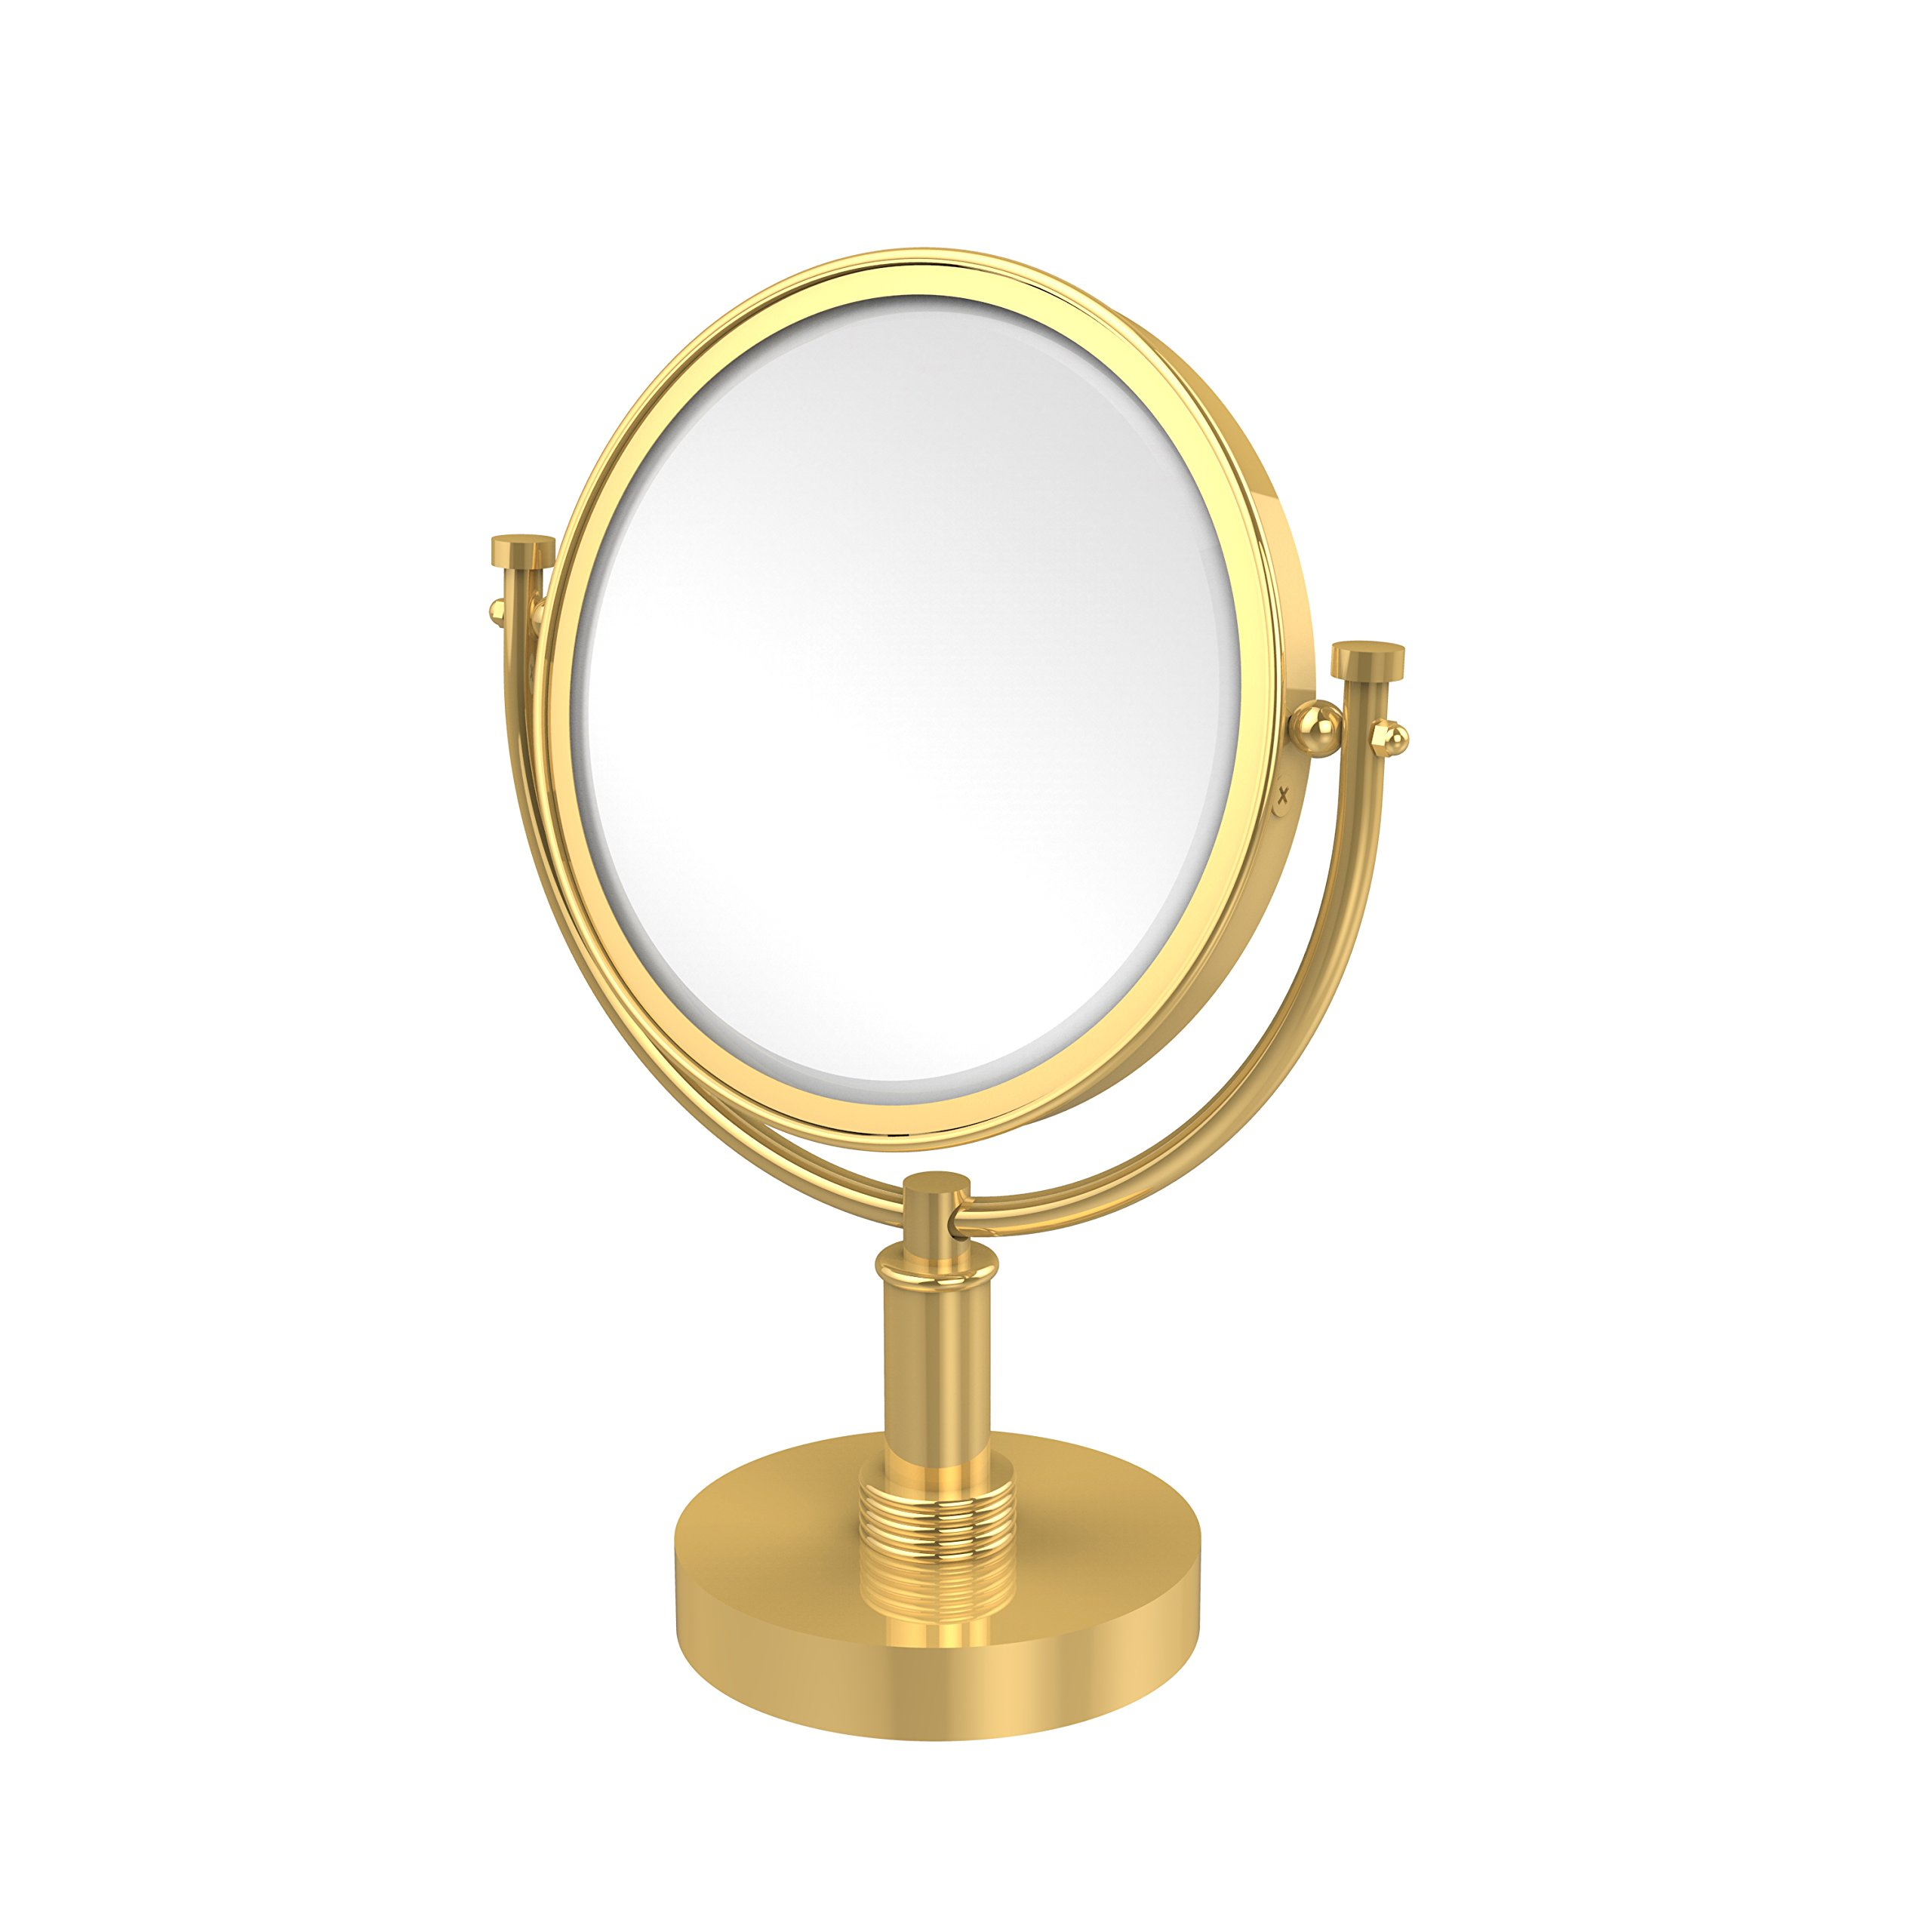 Allied Brass 8 Inch Vanity Top Make-Up Mirror 2X Magnification DM-4G/2X - Unlacquered Brass